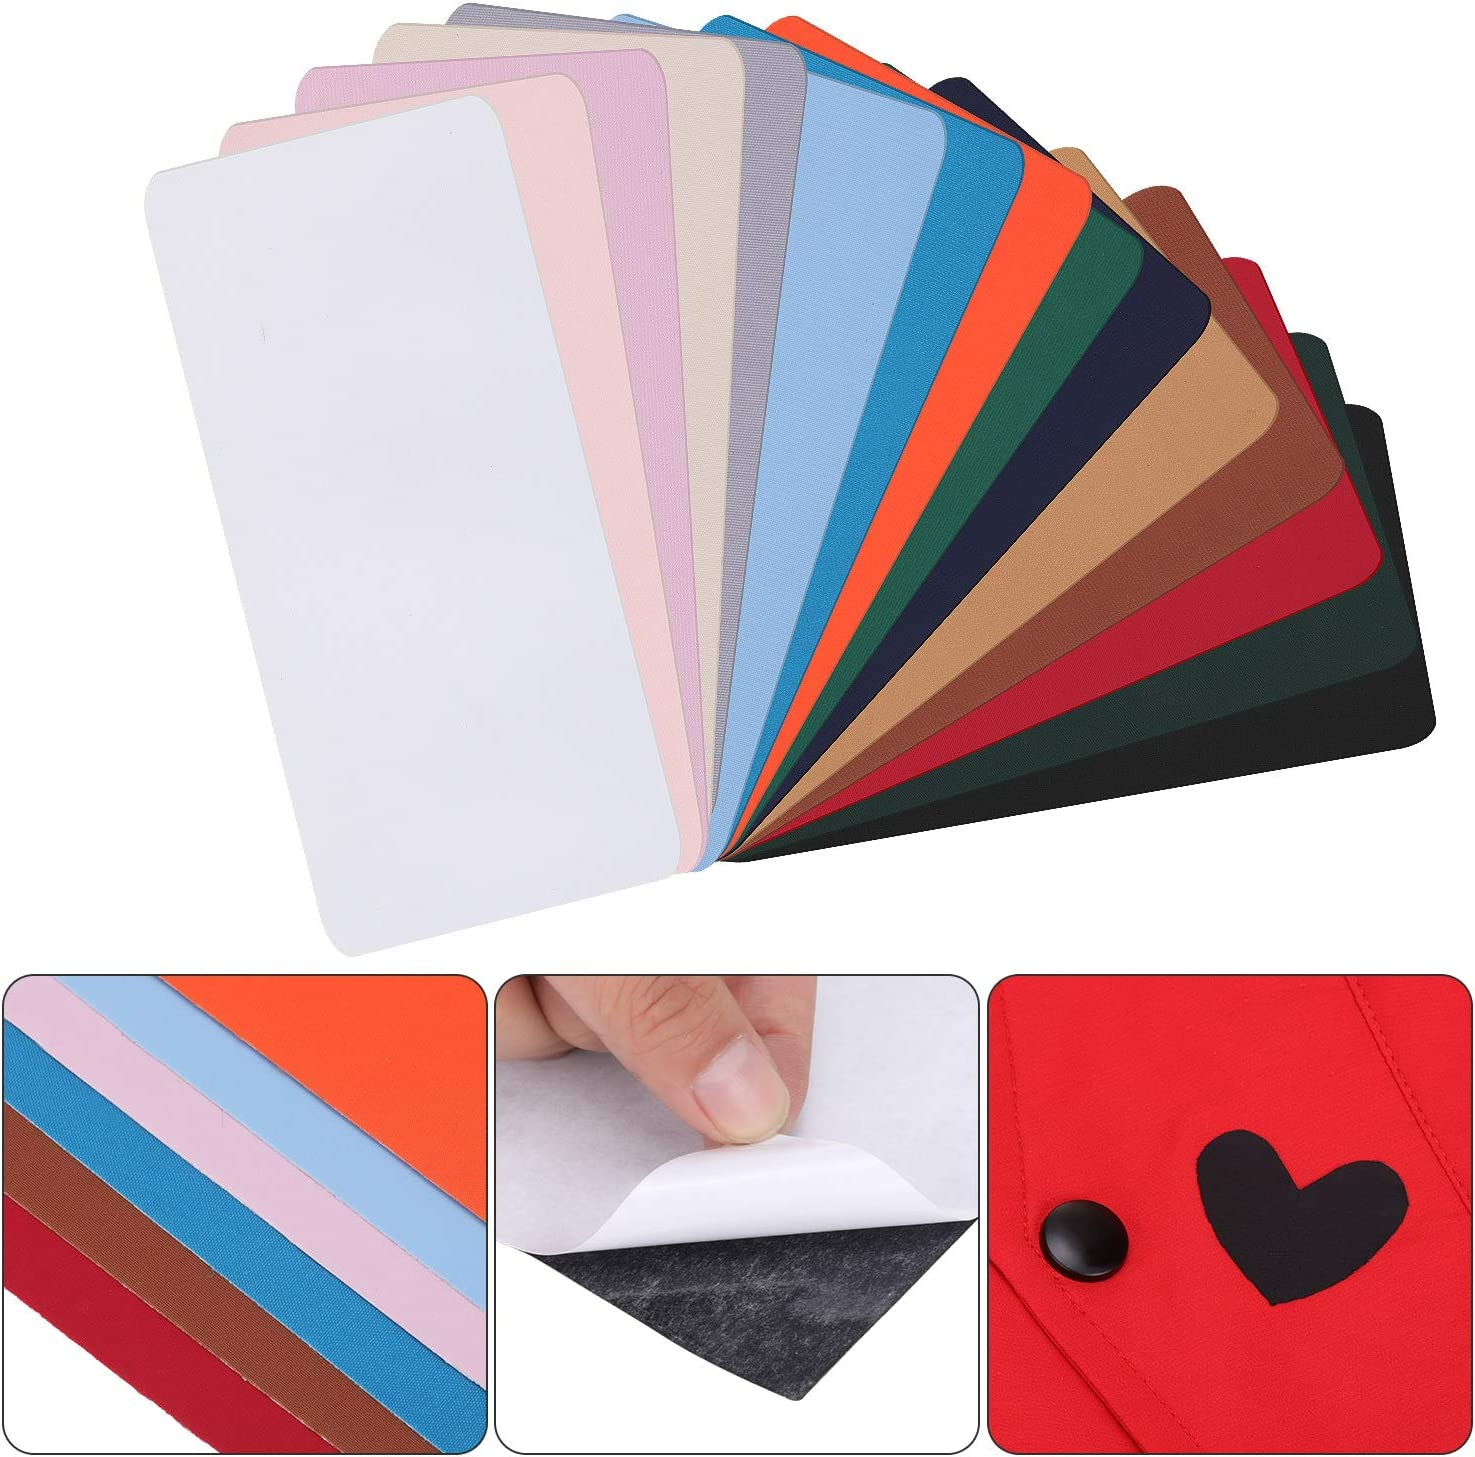 Black 18 Pieces Repair Patches Self-Adhesive Nylon Patch Waterproof Lightweight Repair Patches for Clothing Down Jacket Repair Holes Tearing Fabric 7.87 x 3.94 inches